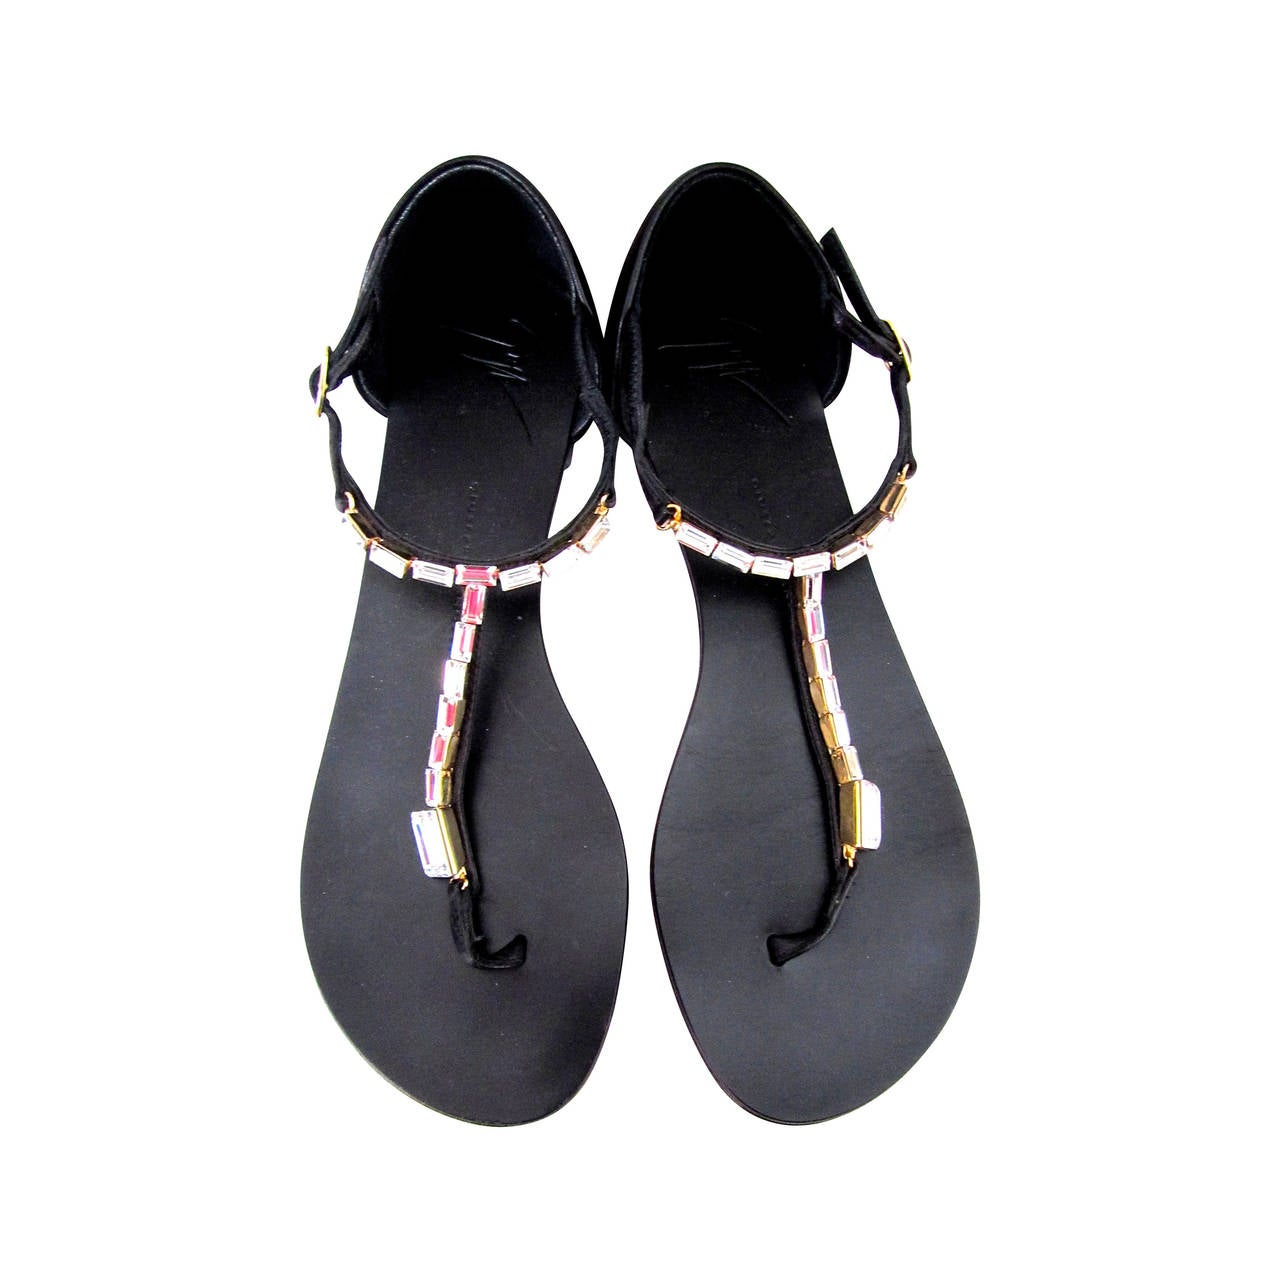 Giuseppe Zanotti Strap Sandals - Size 37 - Black with Rhinestones For Sale